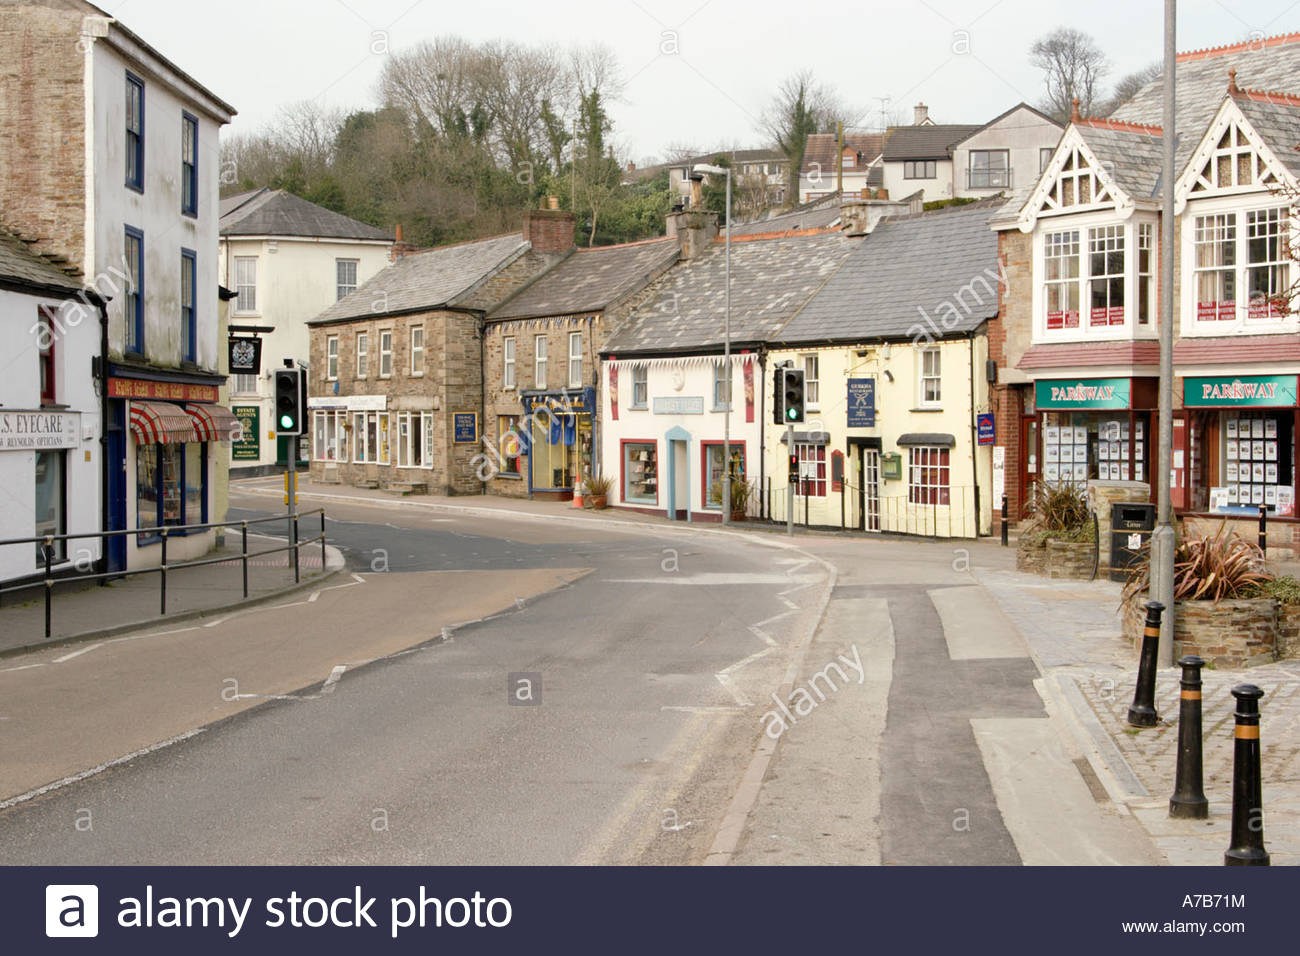 Camelford High Street, Cornwall - Stock Image